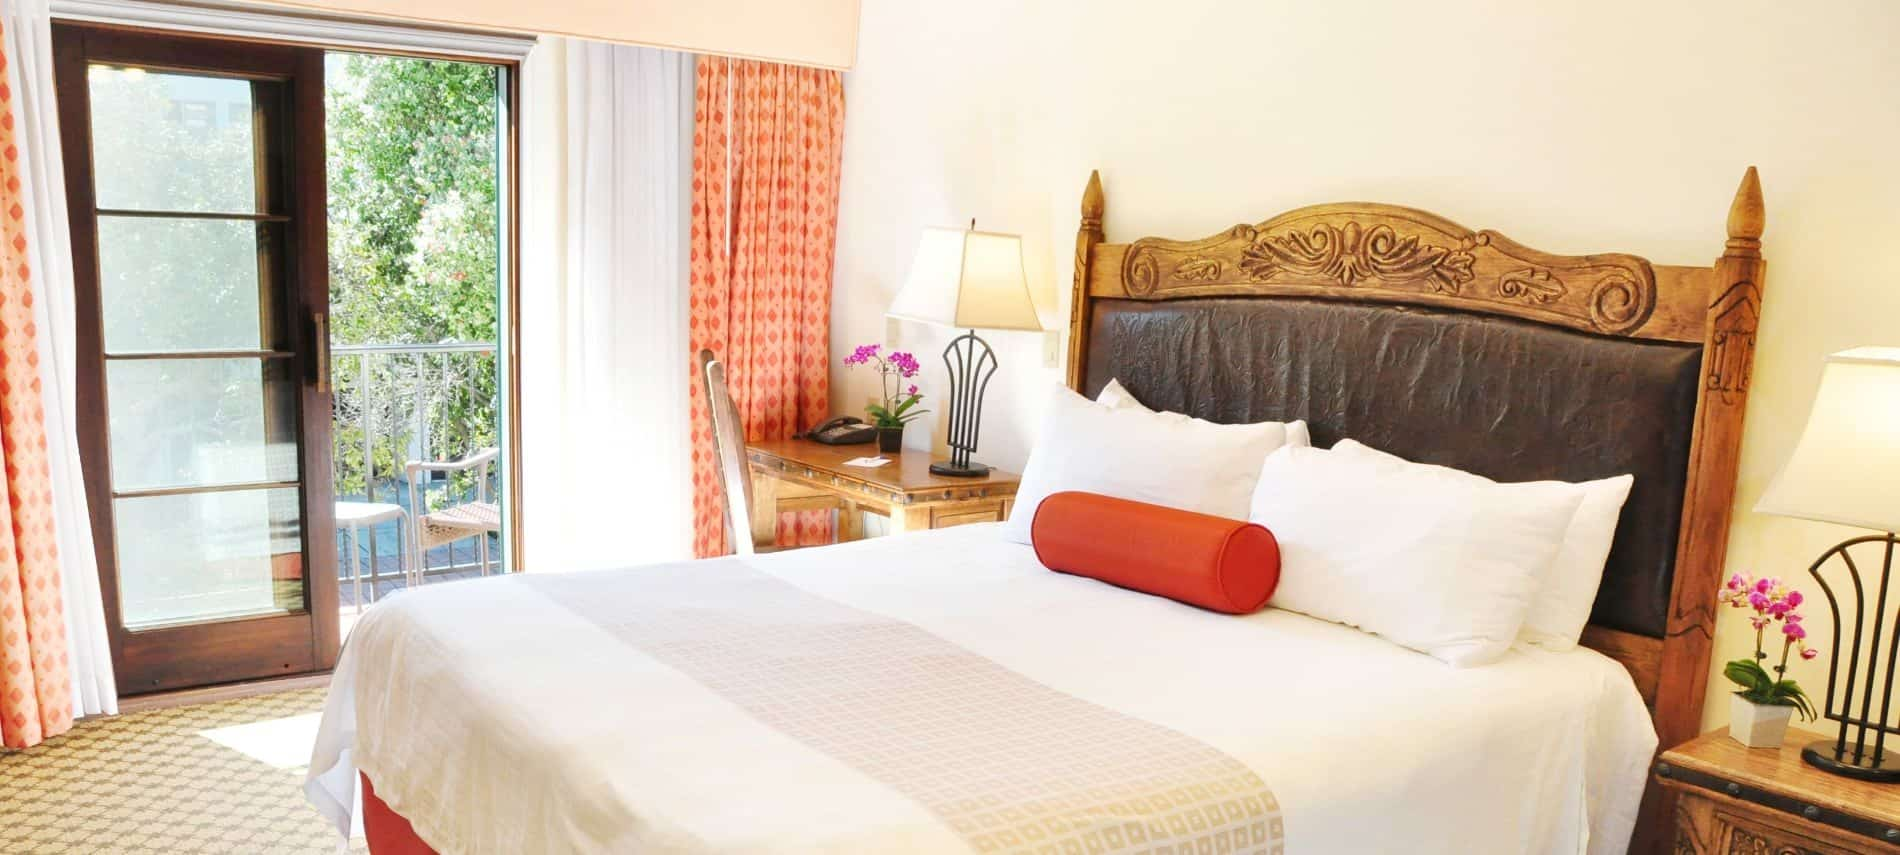 Deluxe king guest room with wood and leather headboard, wood side tables and fresh flowers next to balcony